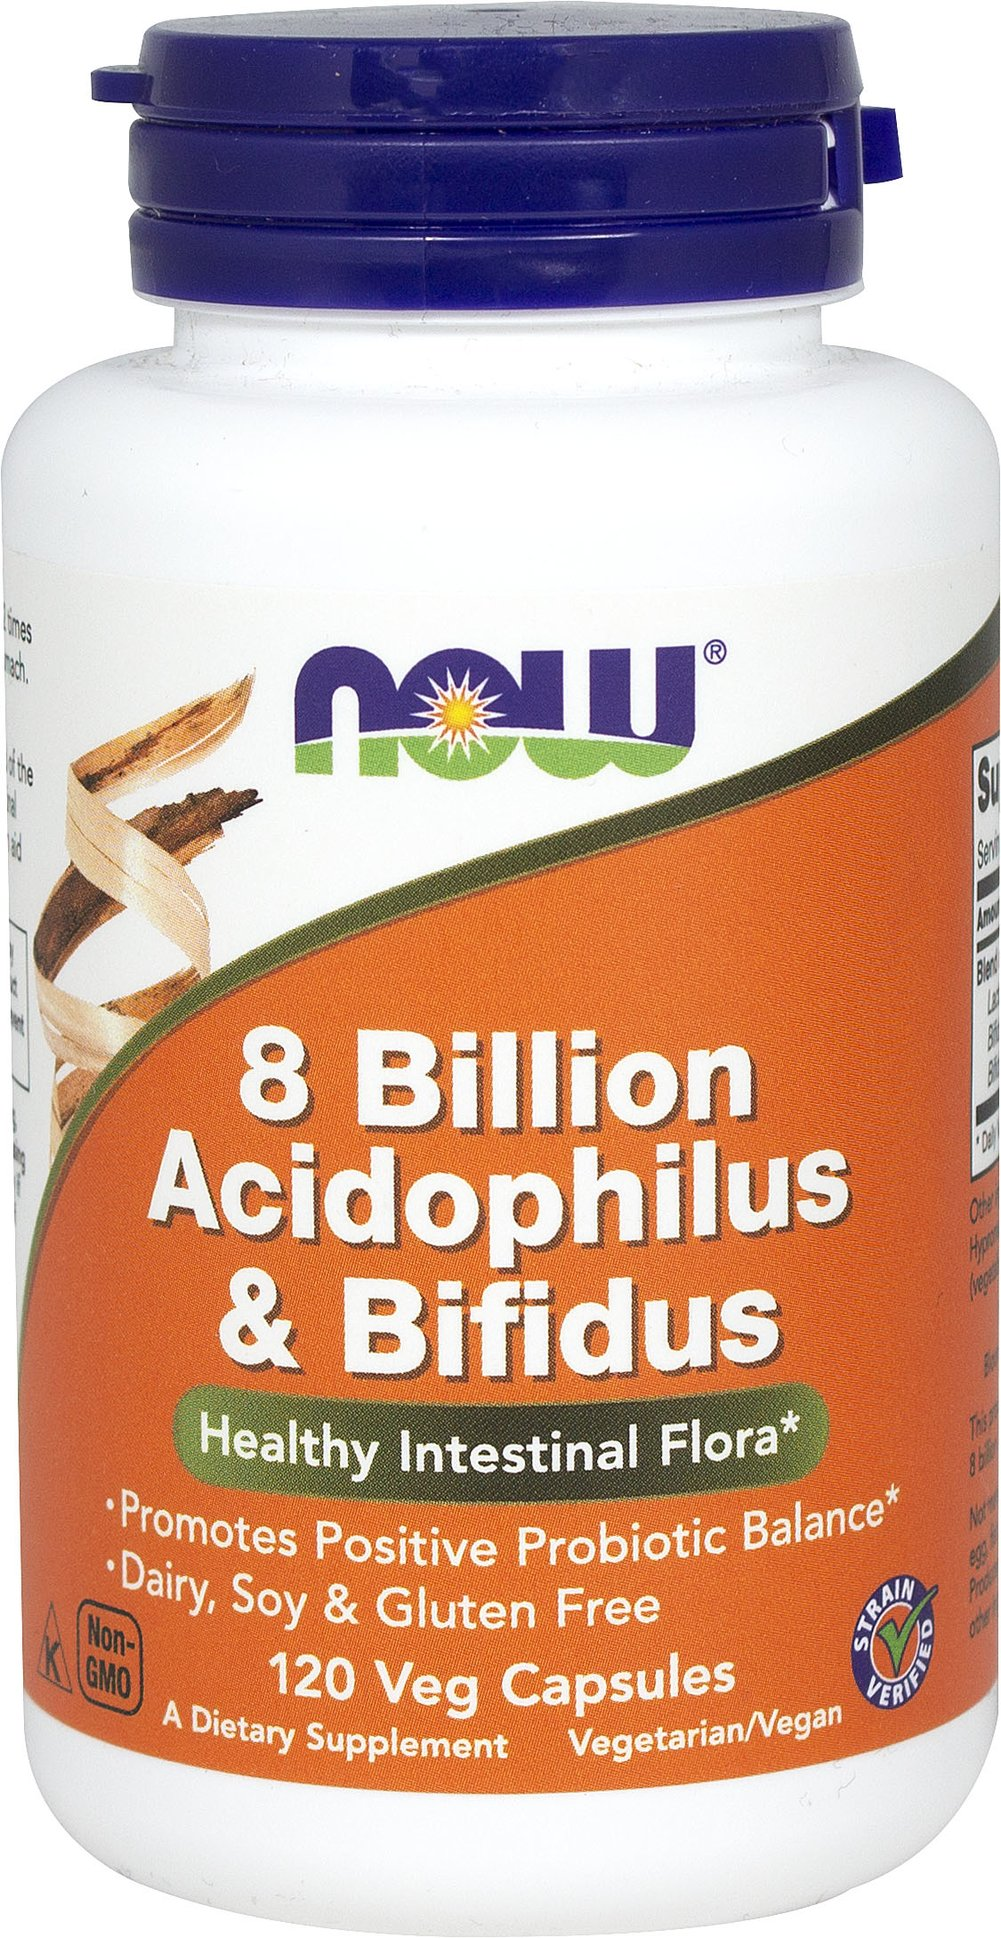 Acidophilus/Bifidus 8 Billion  120 Capsules 8 billion $13.99